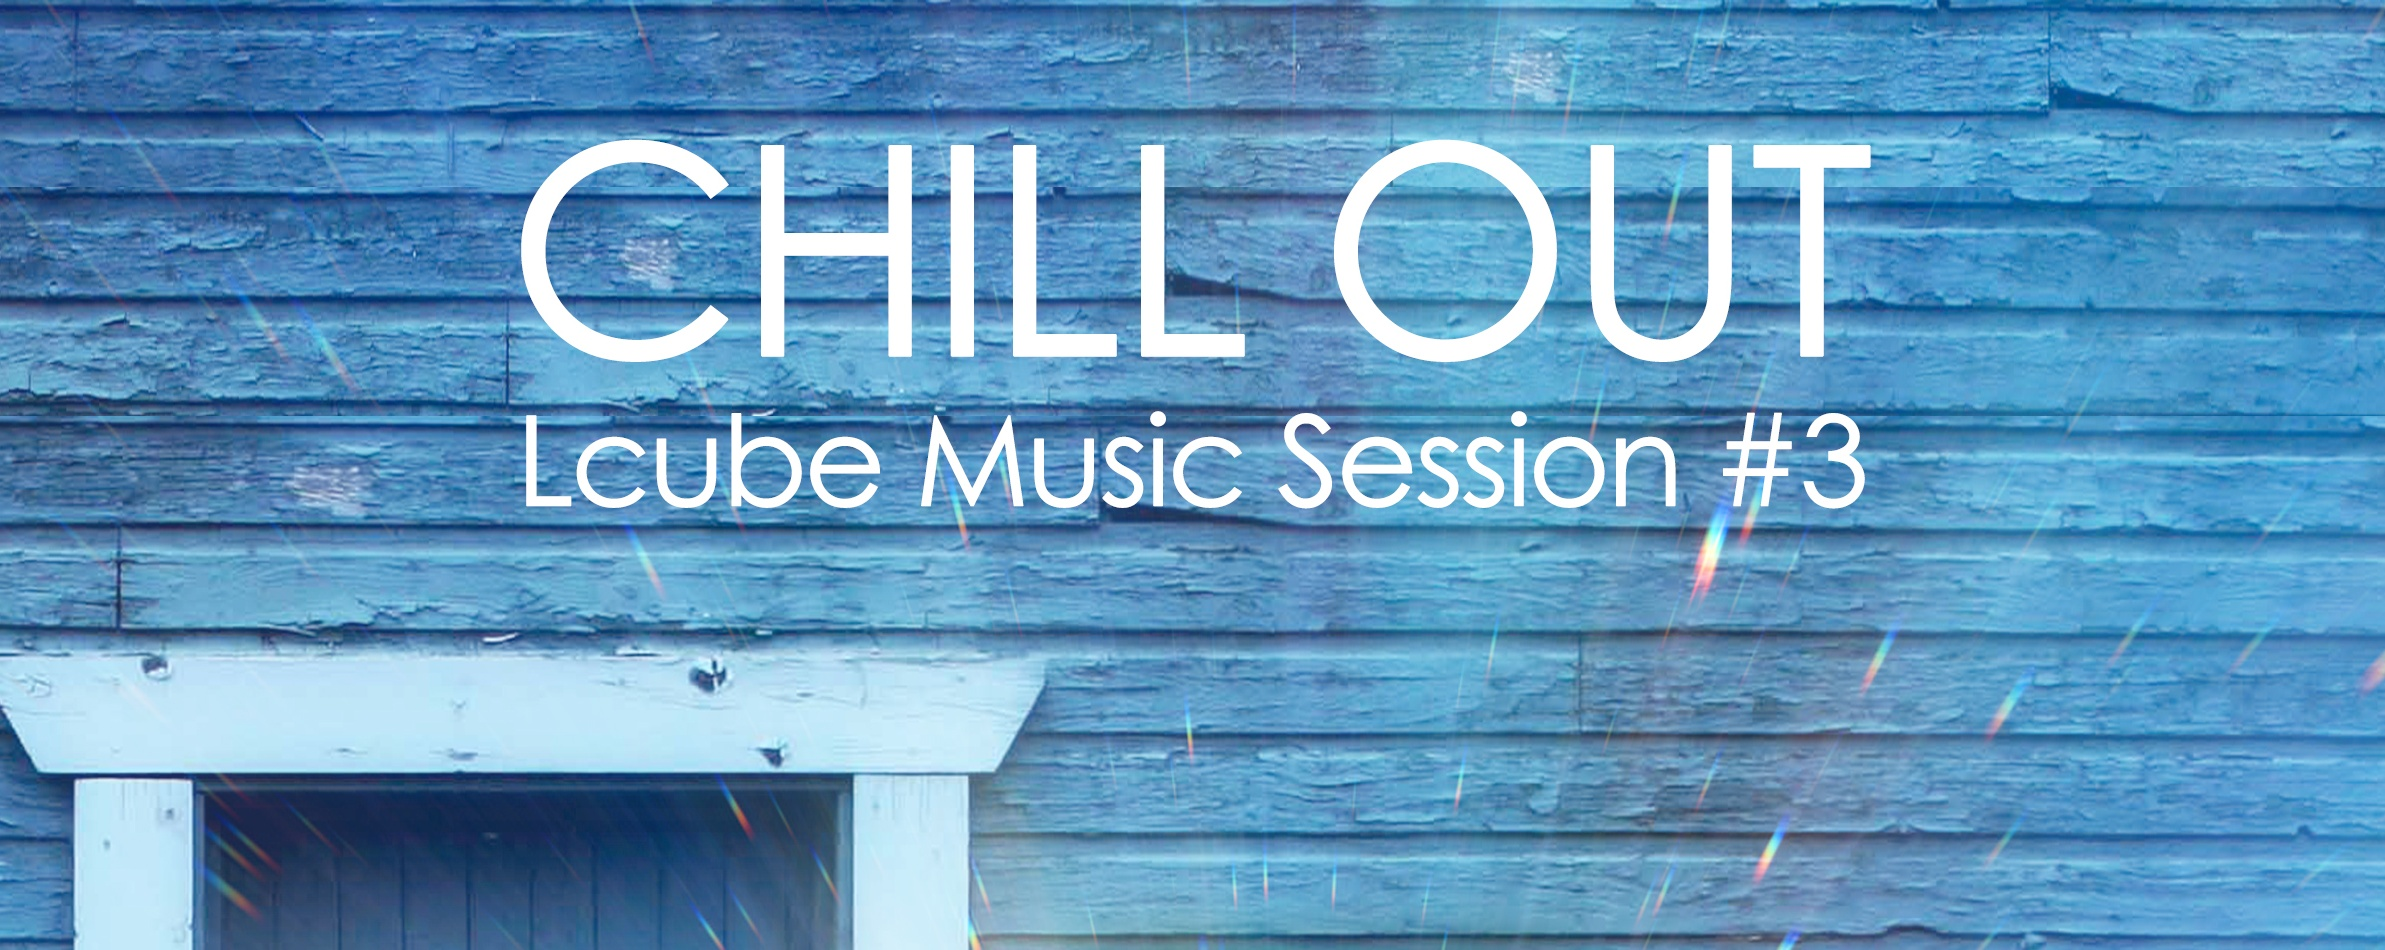 Lcube Music Session #4 Chill Out